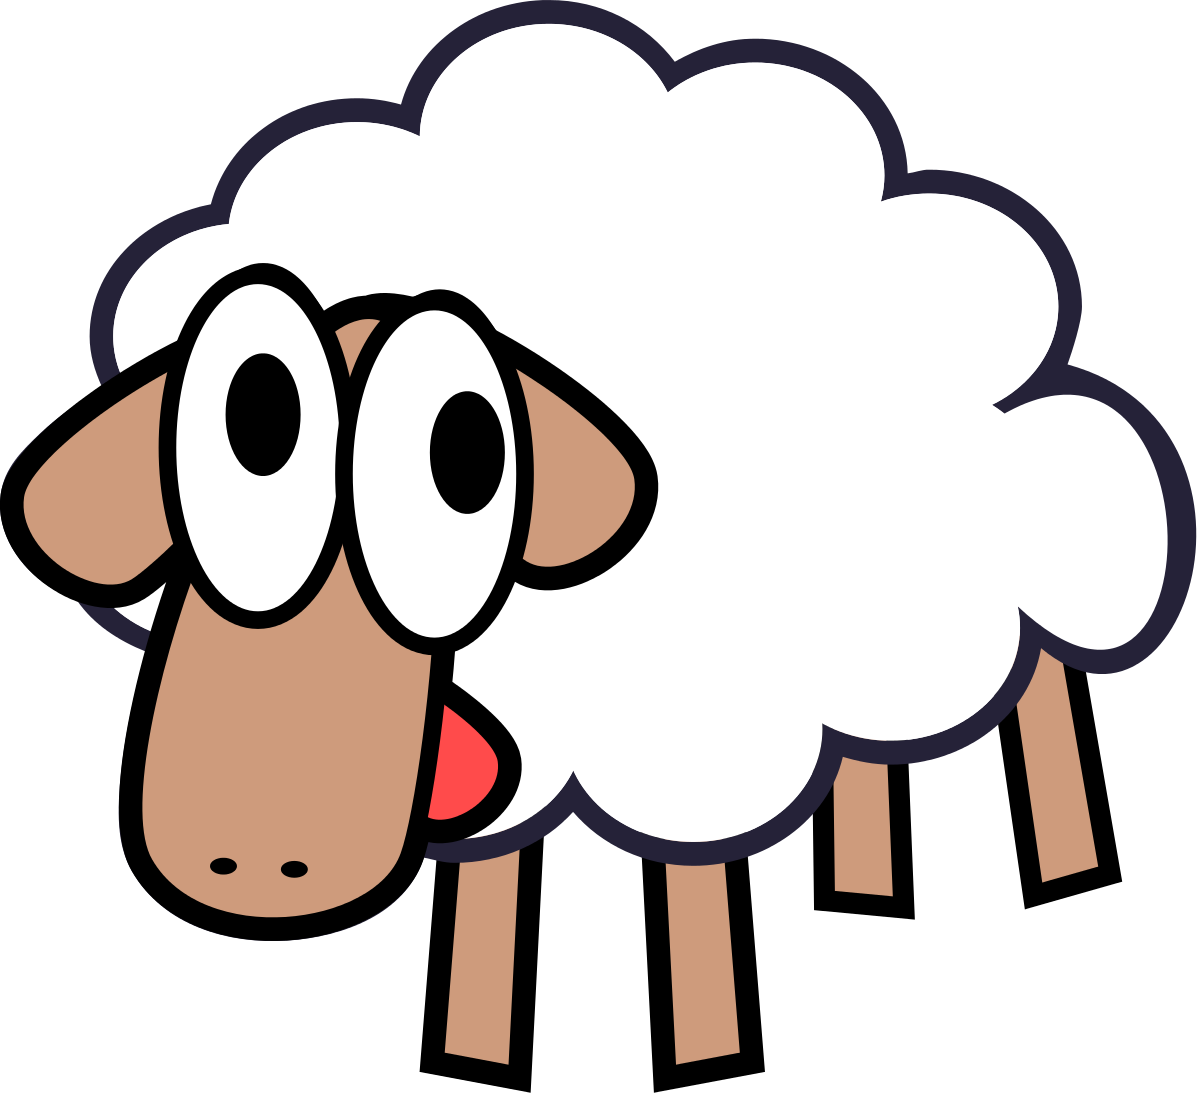 Lamb outline sheep clip art free clipart images image.